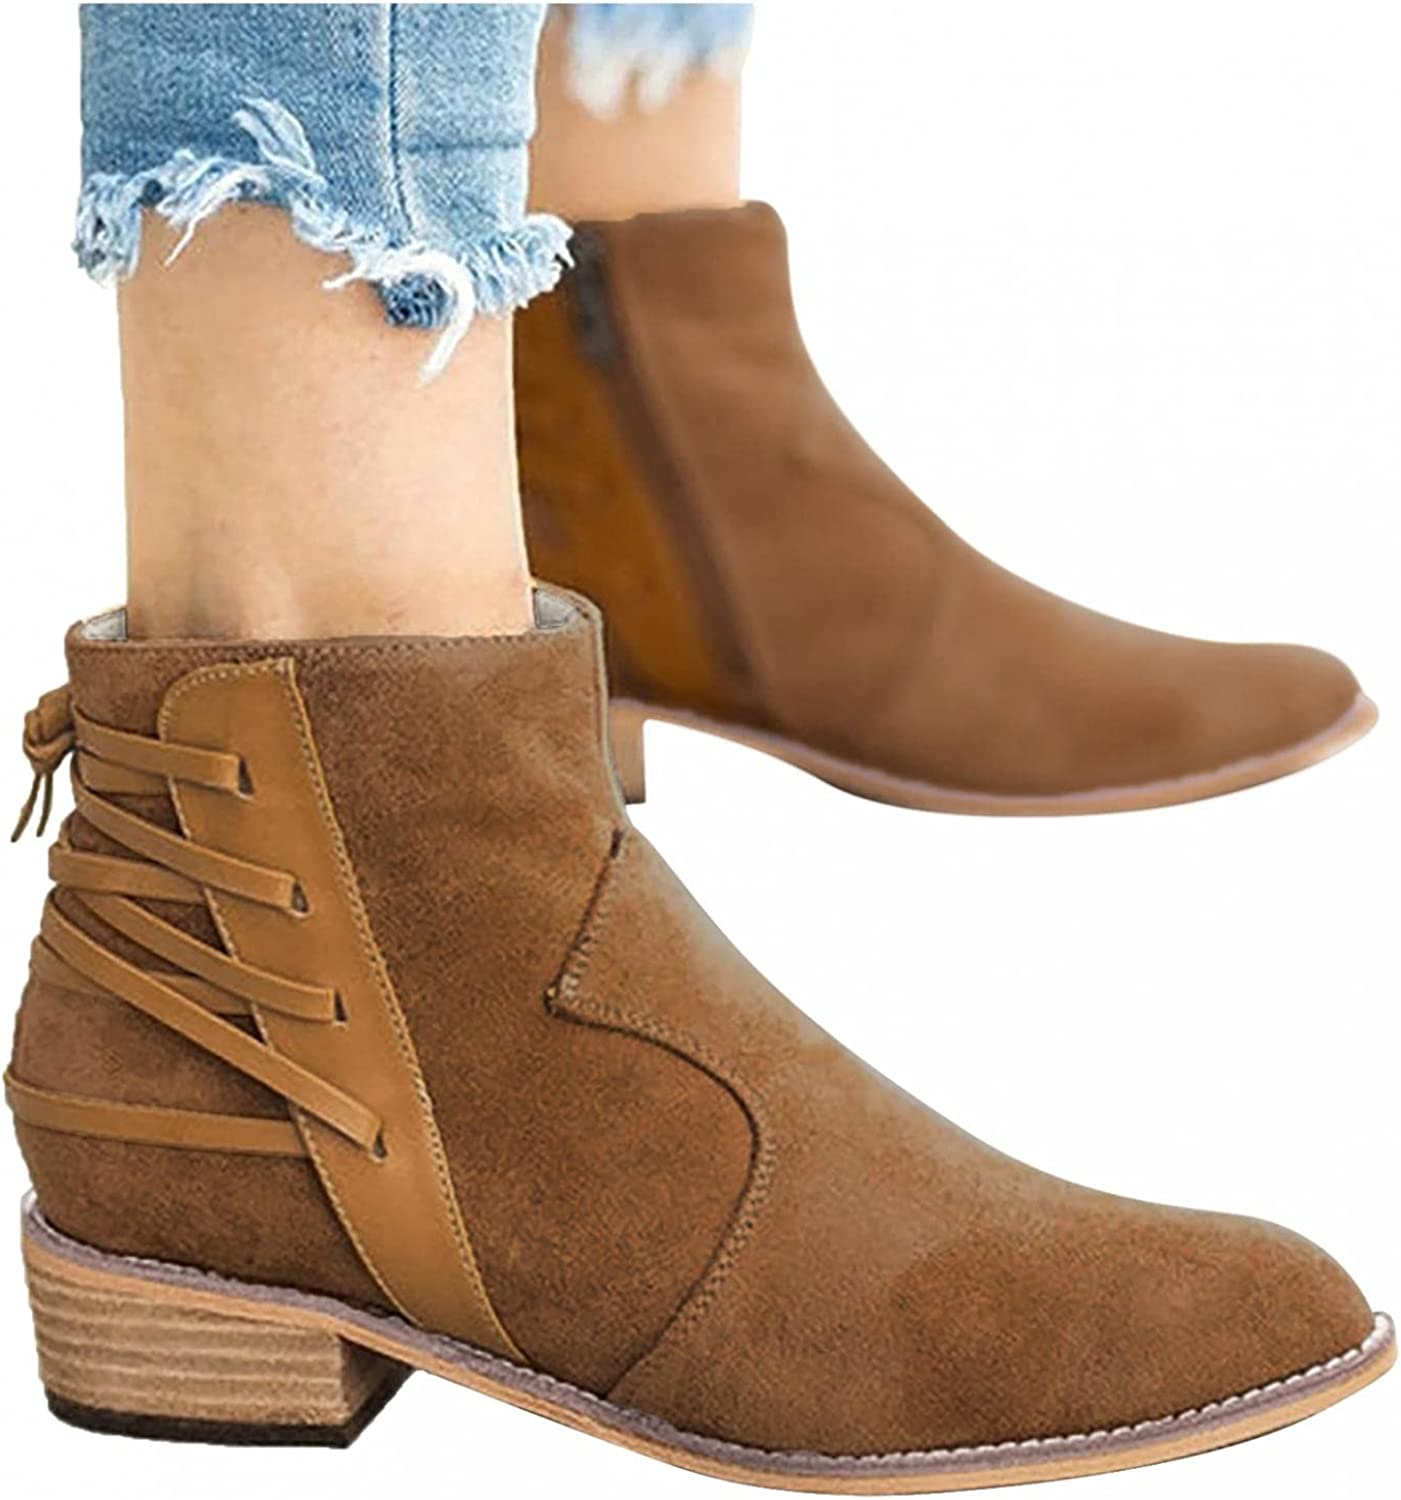 Zieglen Combat Boots, Boots for Women Retro Buckle Strap Low Heel Short Boots Cowboy Boots Thigh High Boots Motorcycle Boots